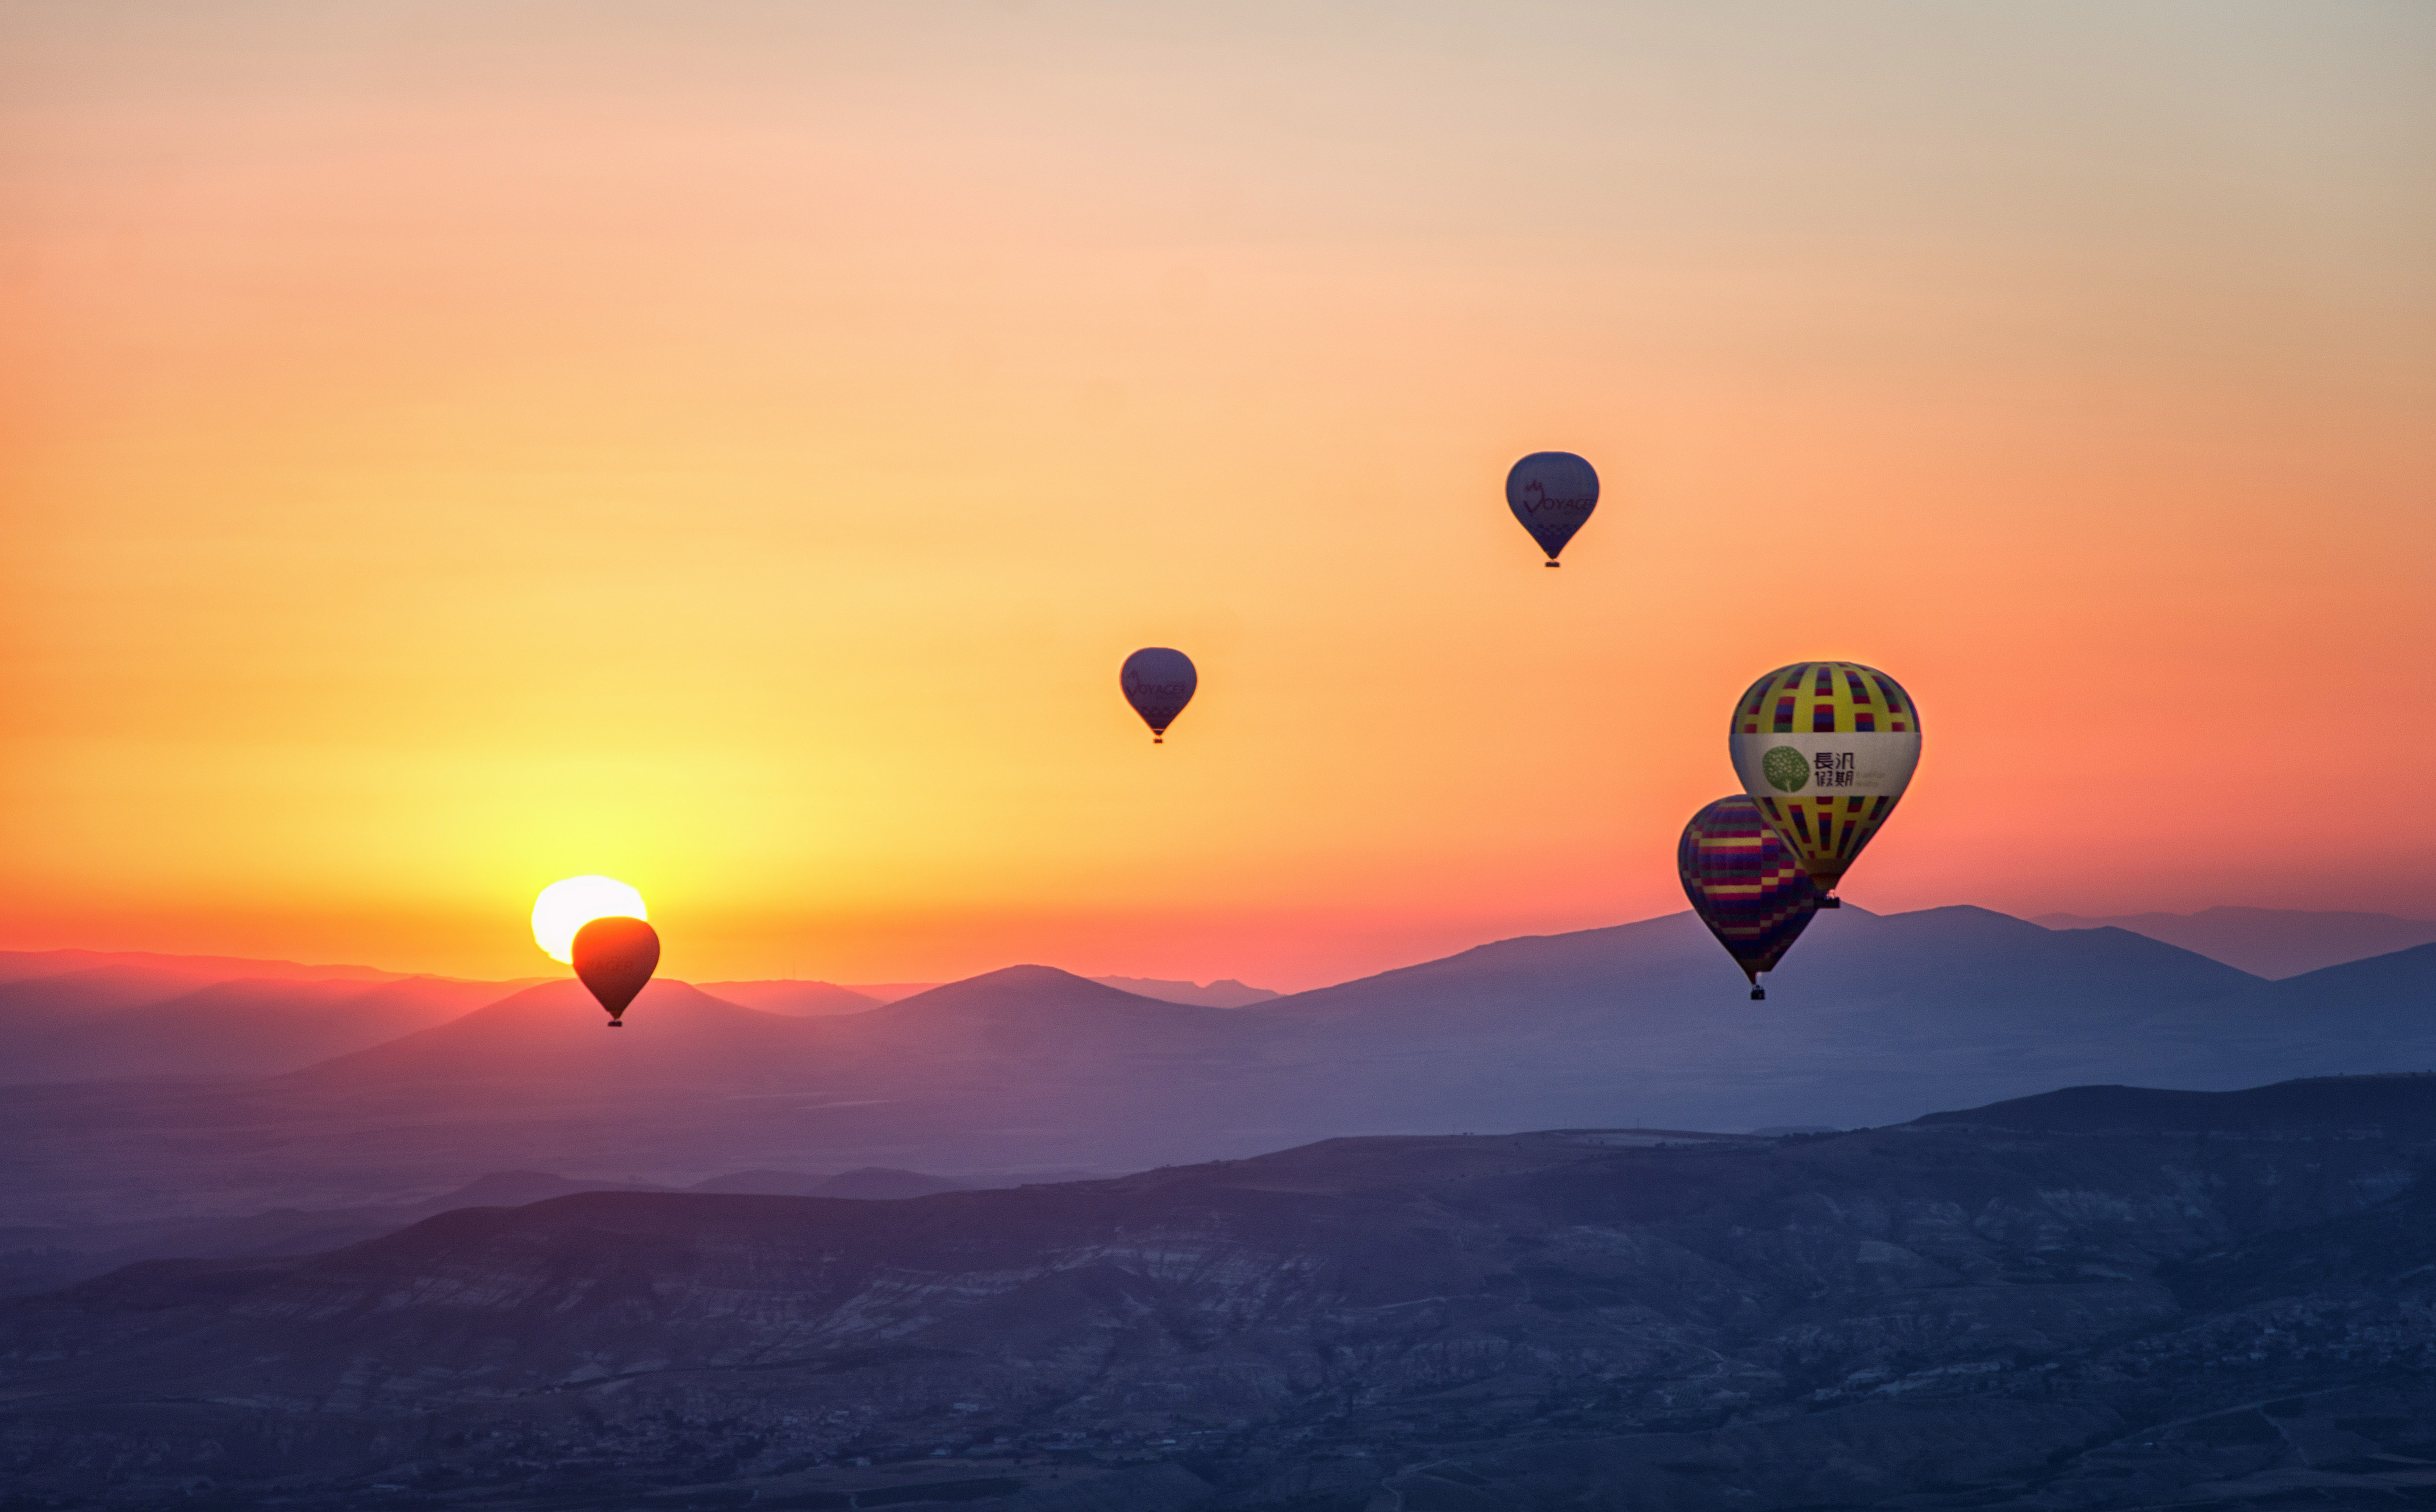 Best Hot Air Balloon Rides in the World - The Travel Women